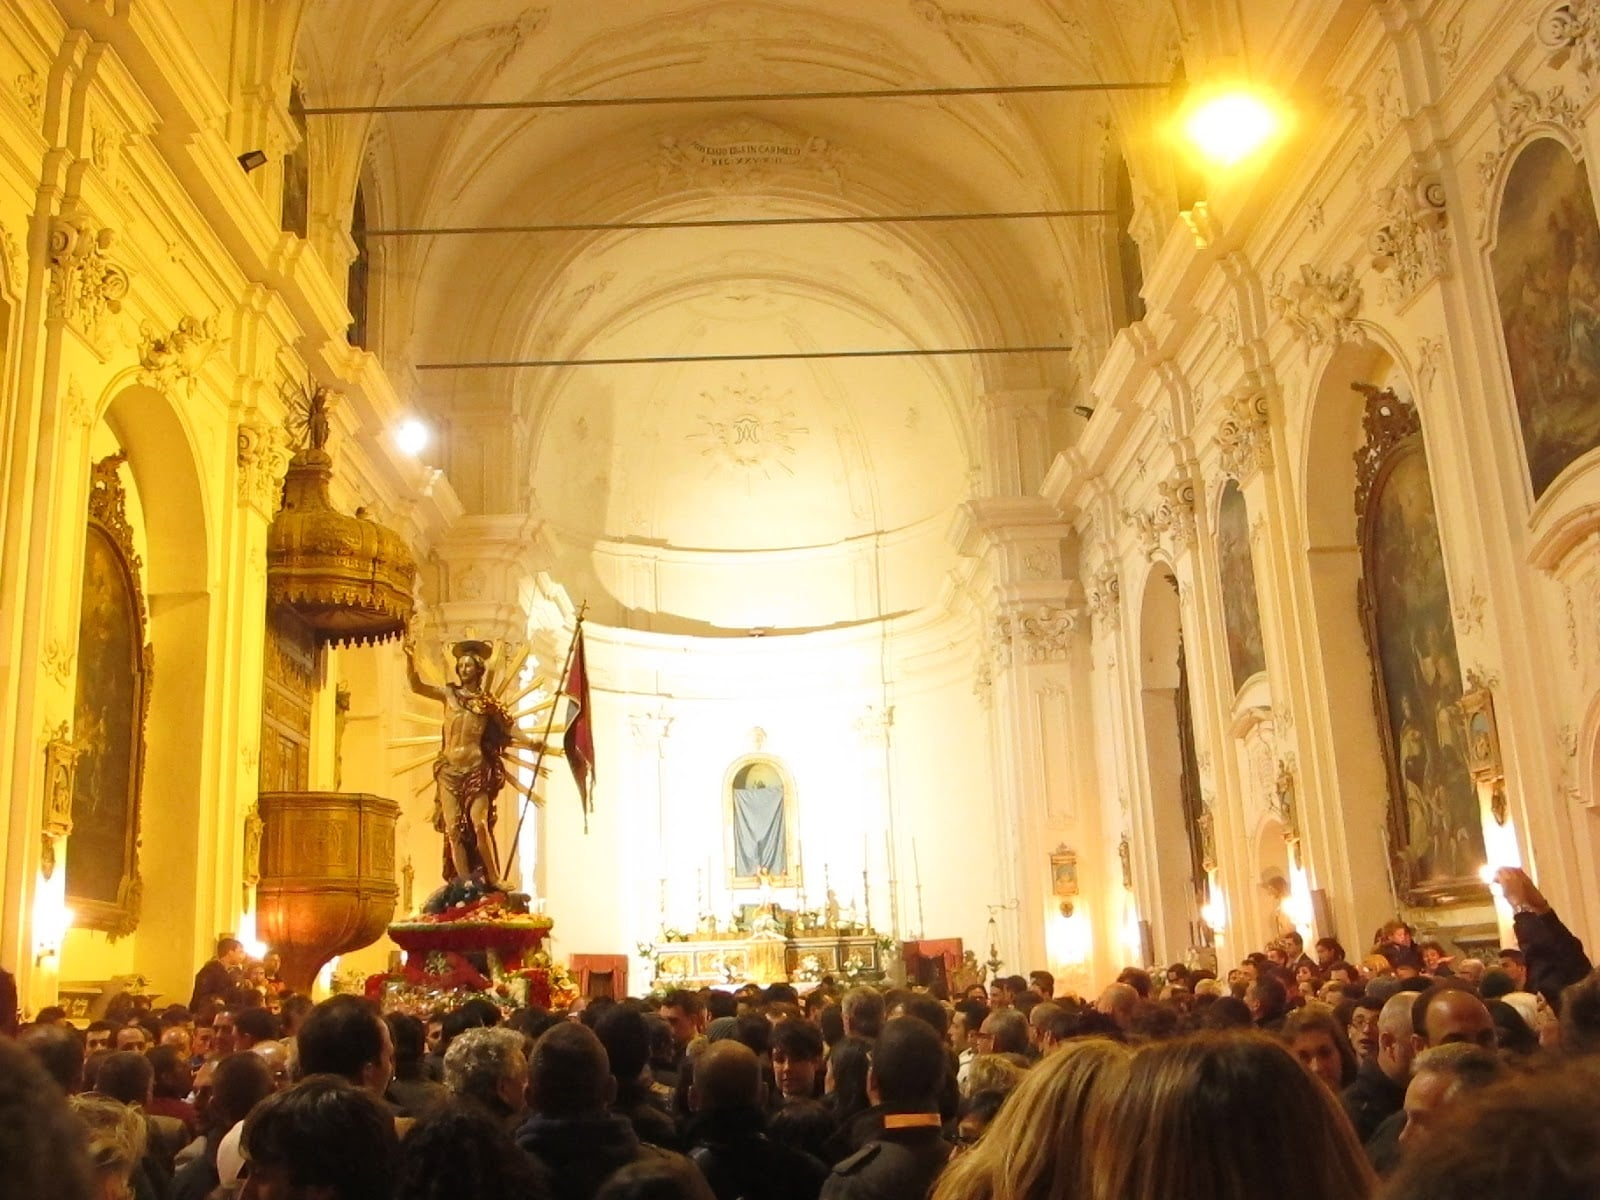 Easter traditional parish church in Italy